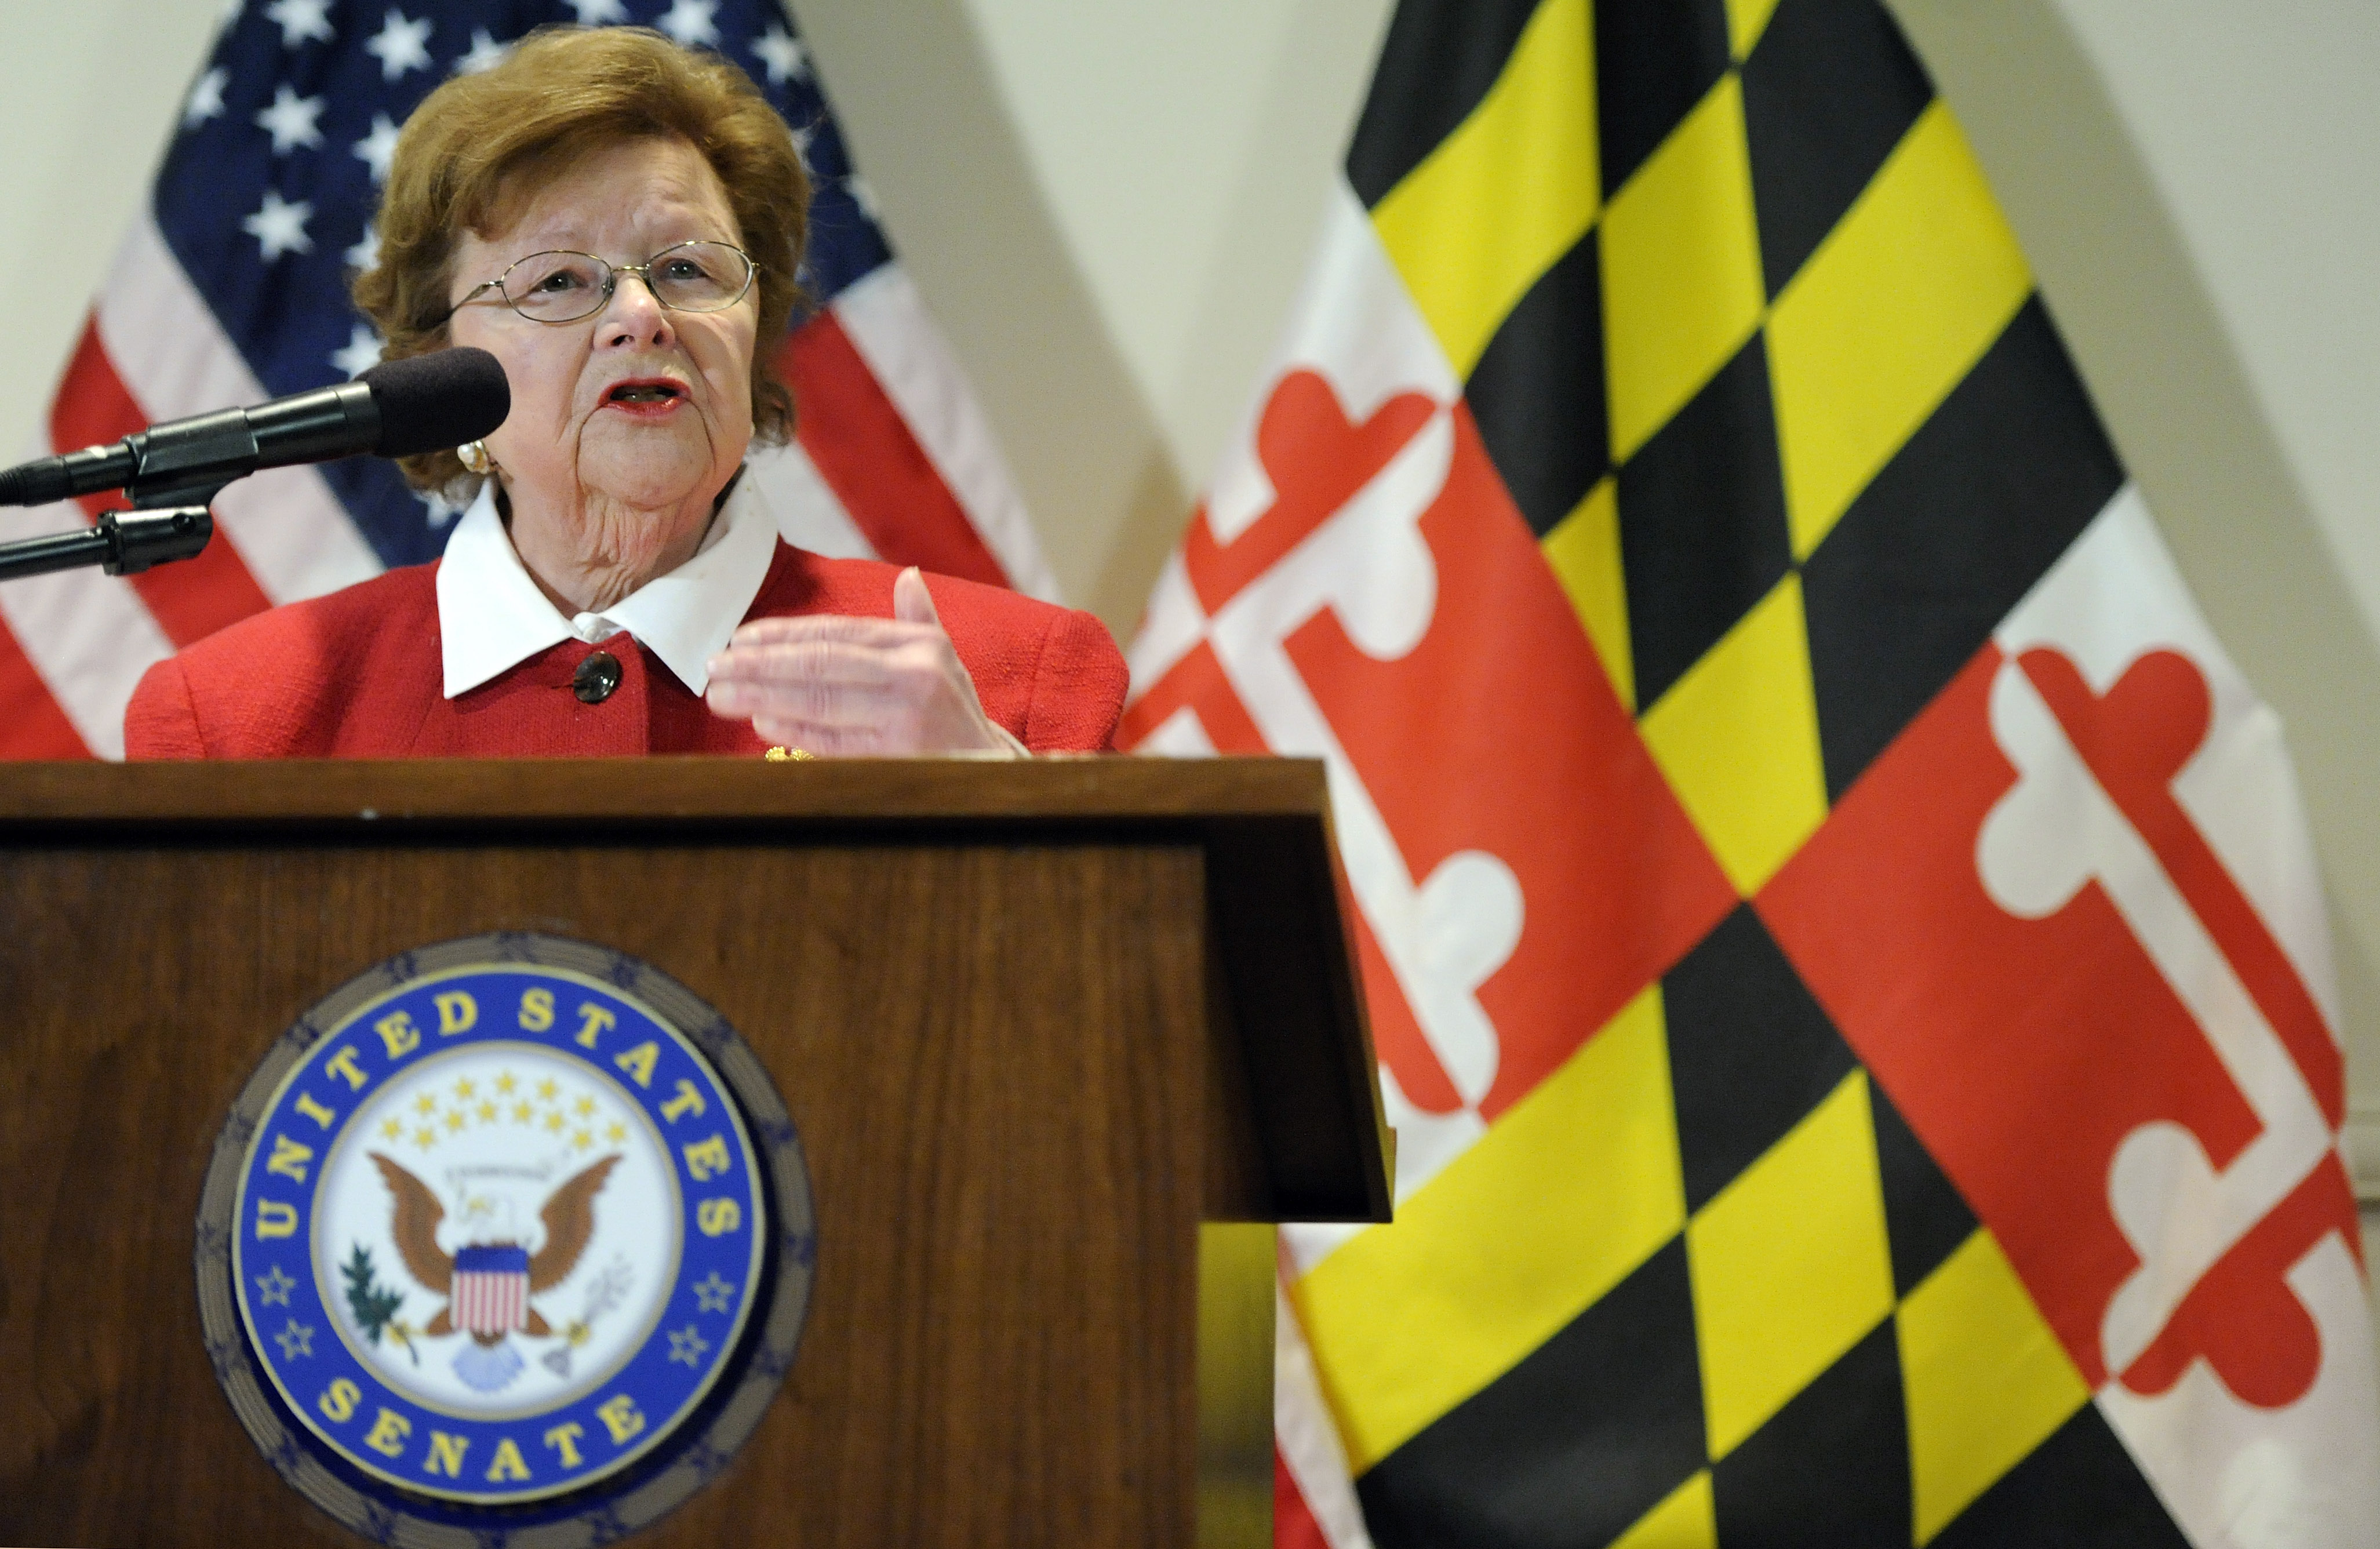 Sen. Barbara Mikulski, D-Md., the longest-serving woman in the history of Congress, speaks during a news conference announcing her retirement after her current term, in the Fells Point section of Baltimore on March 2, 2015.